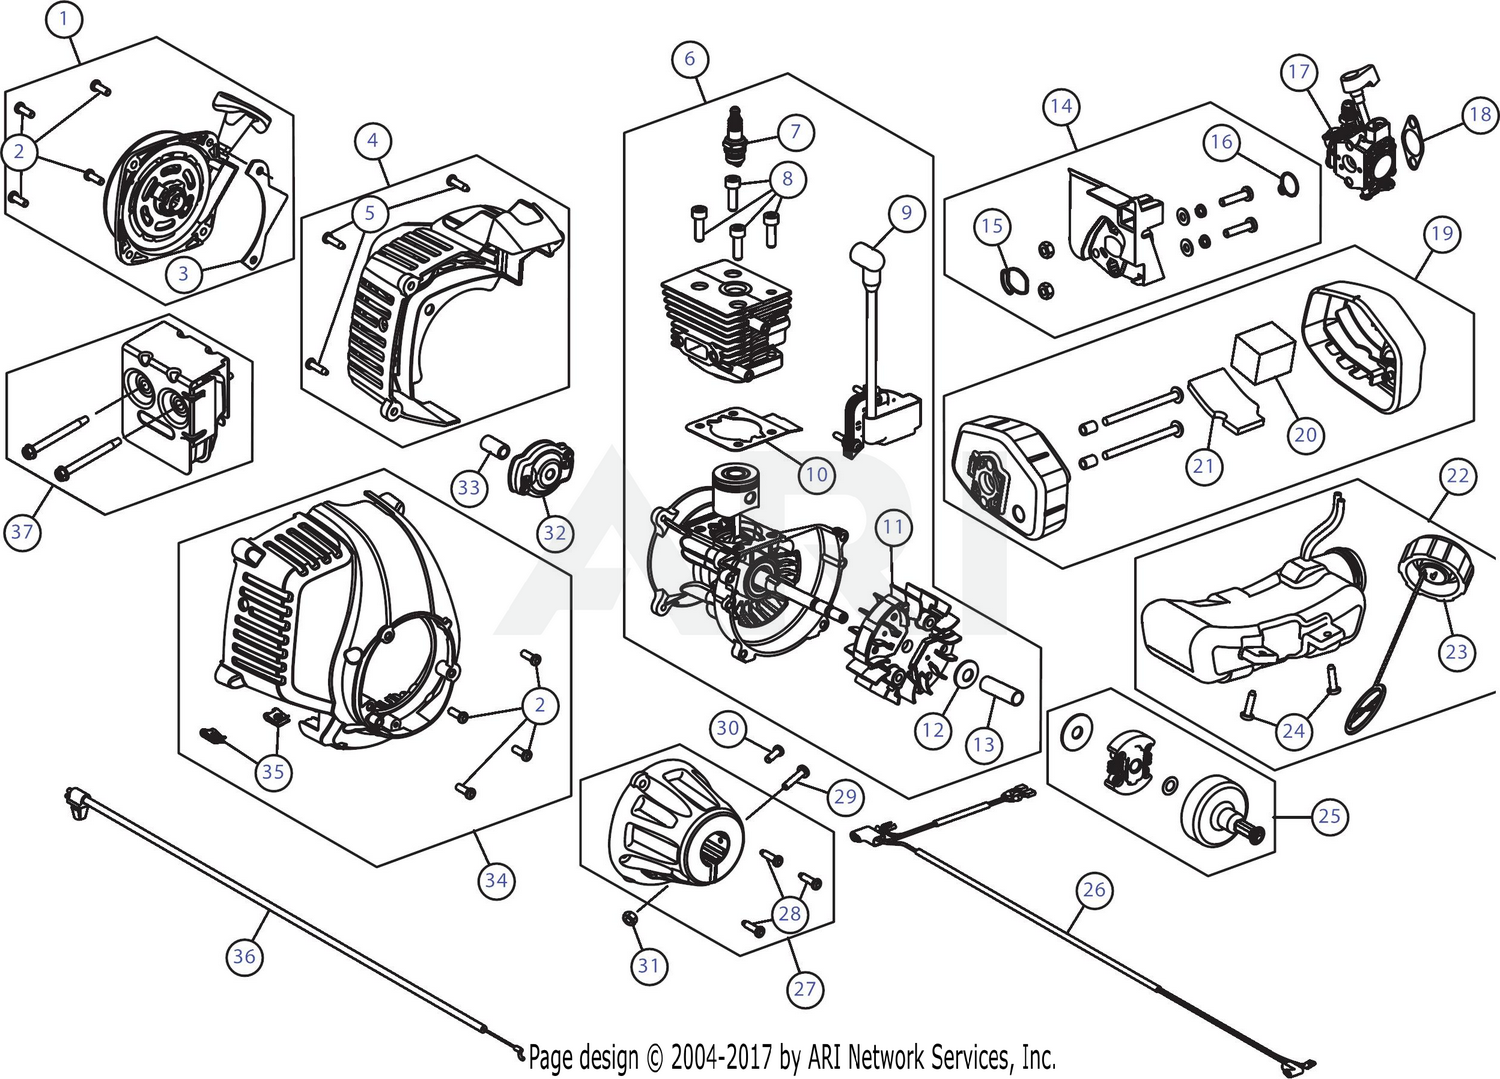 Mtd 41edz24c799 316740800 Engine Assembly Diagram